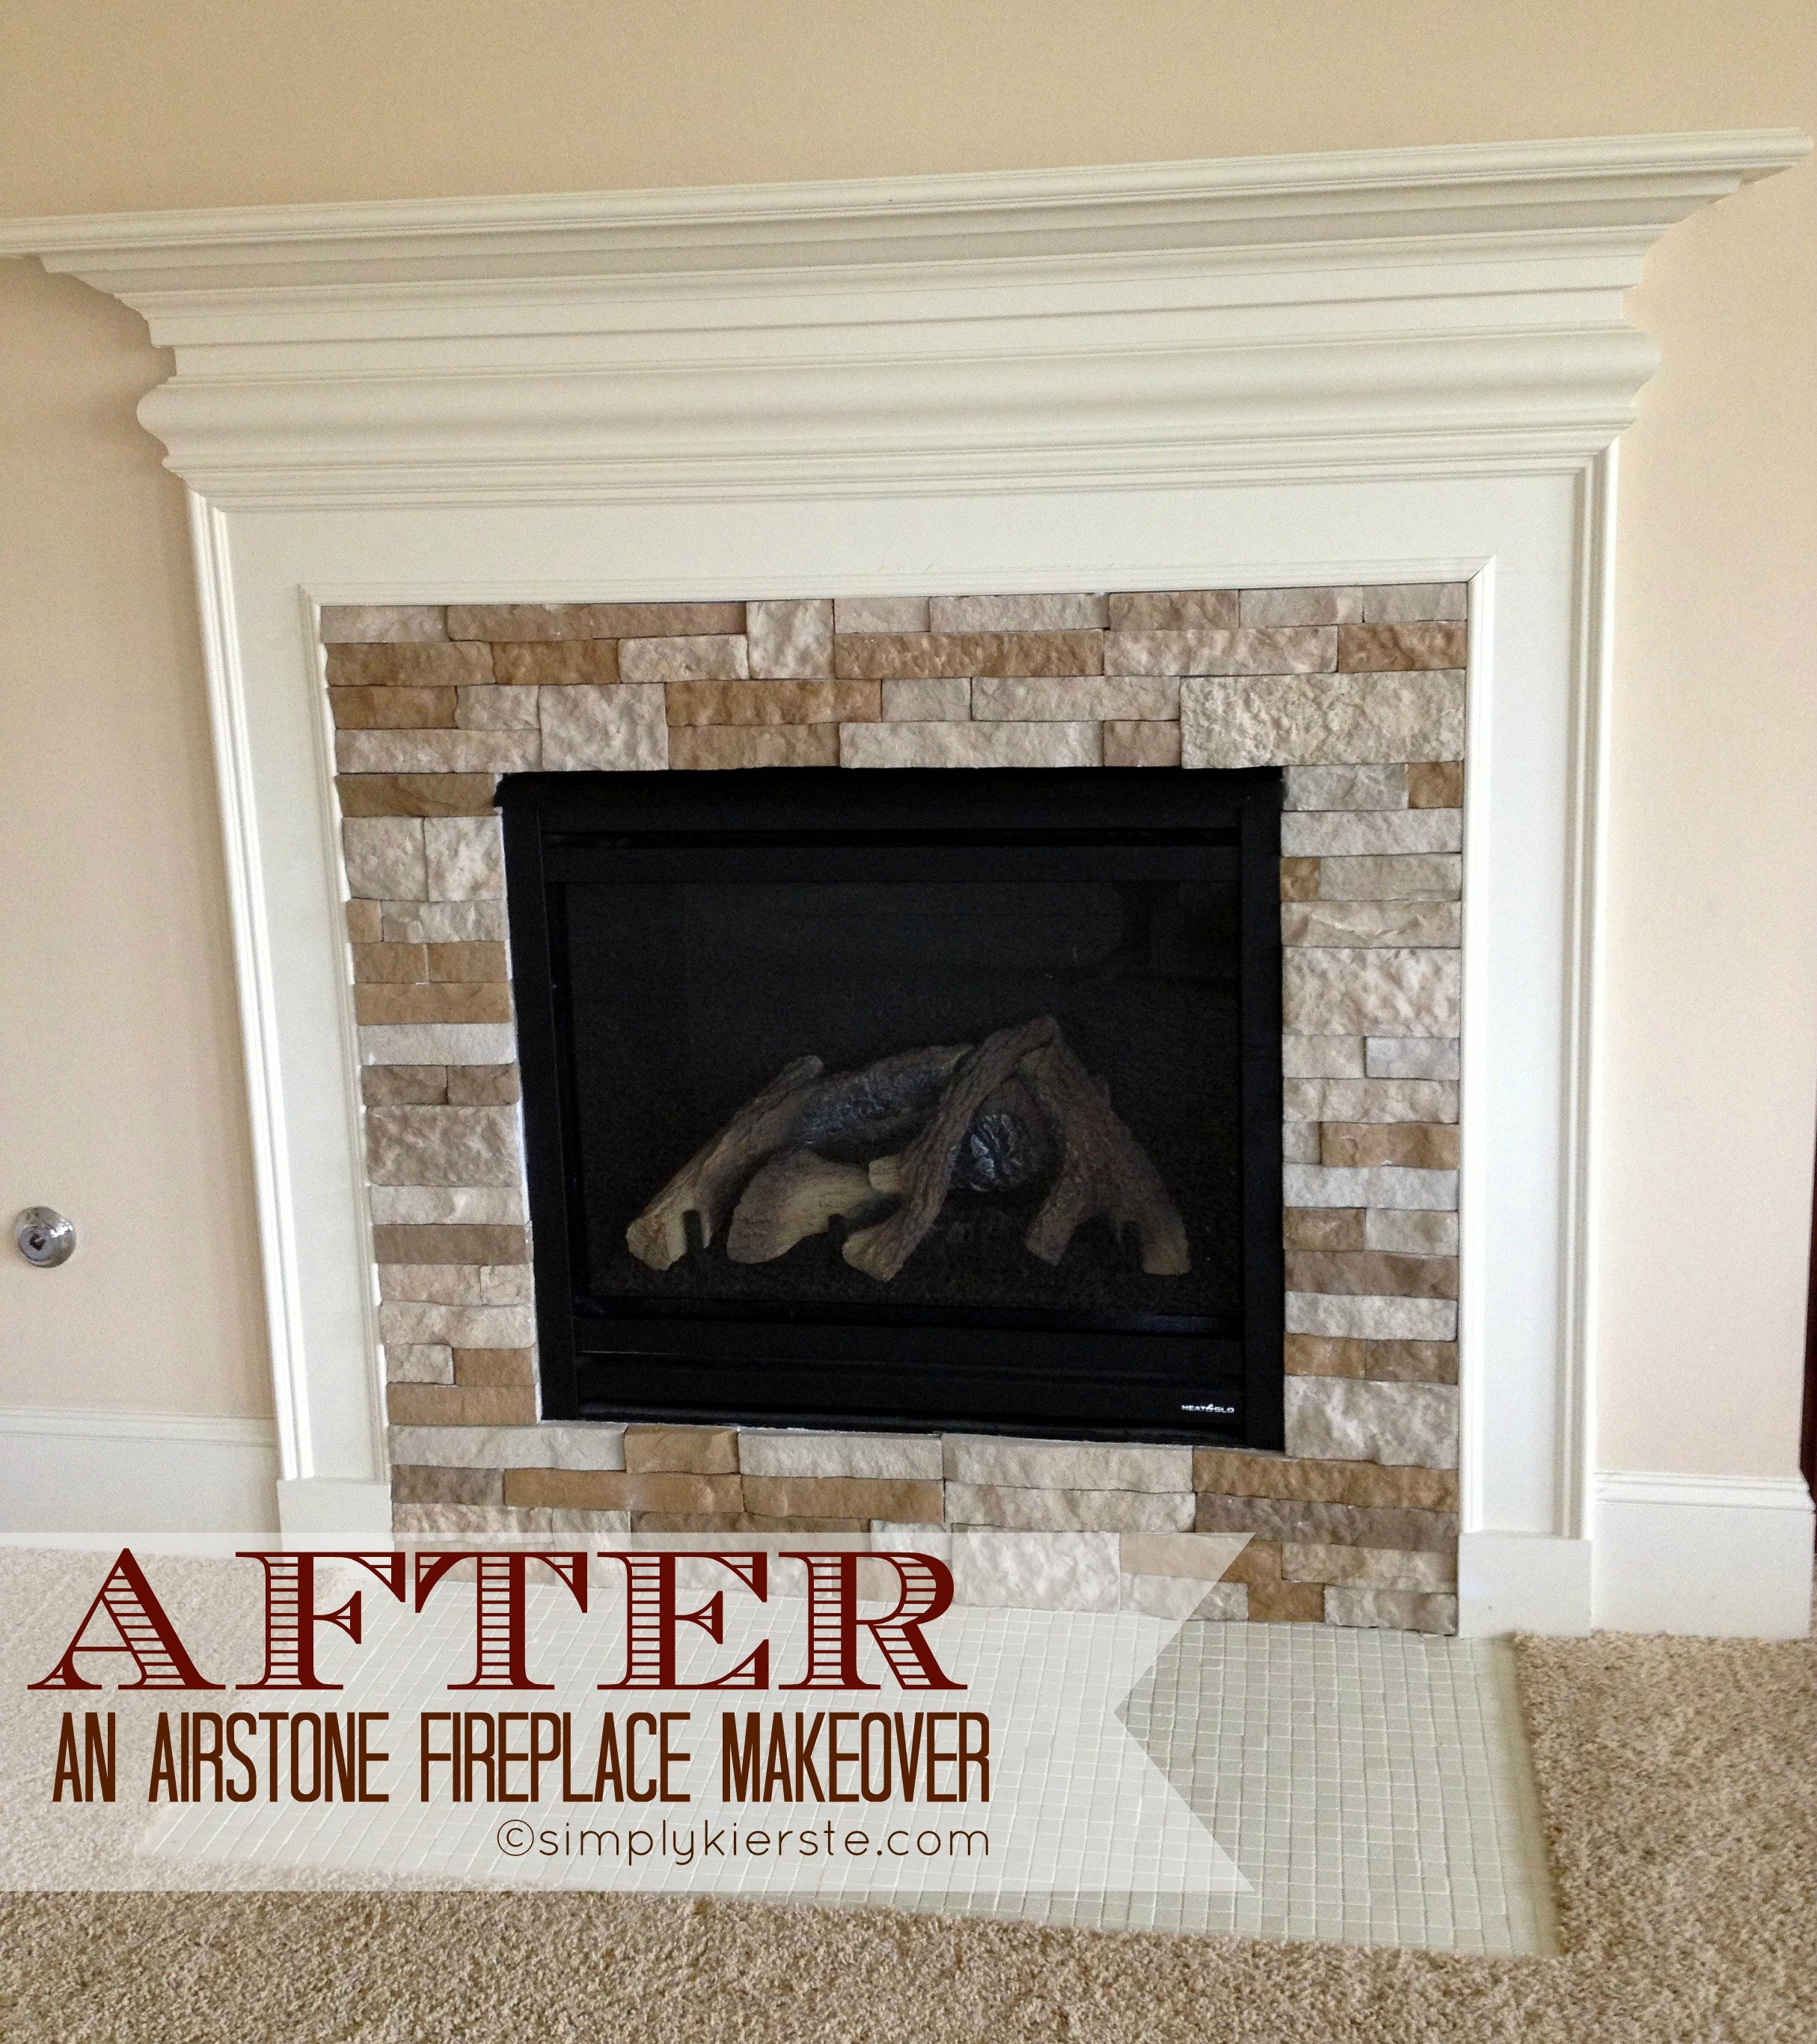 Cover brick fireplace with stone - Fireplace Airstone Makeover Simplykierste Com